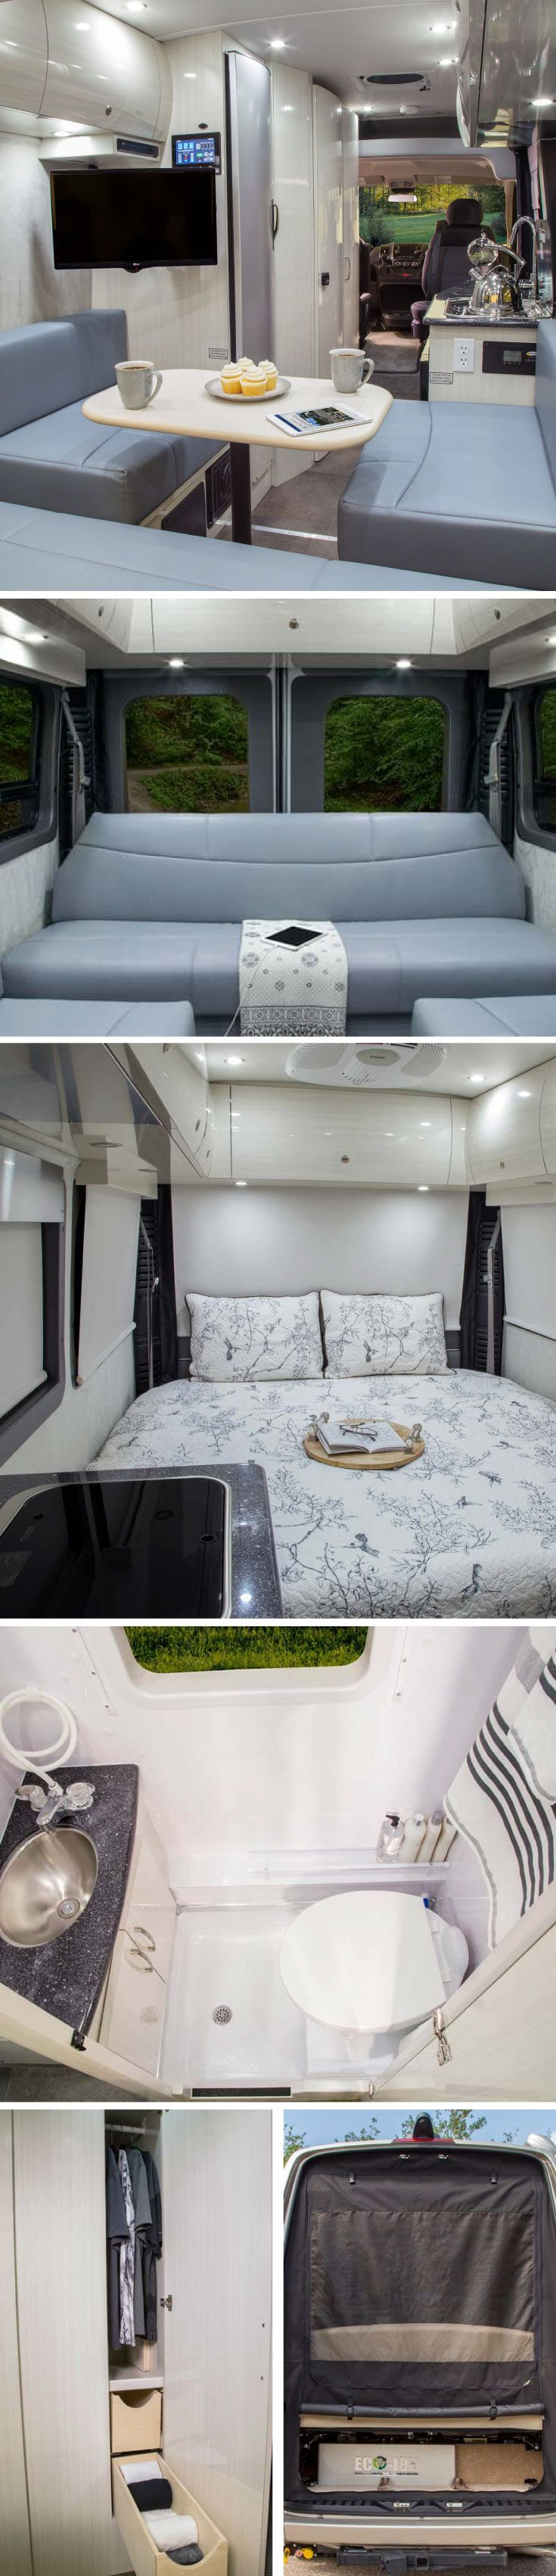 Modern and stylish Lexor Class B from Pleasure-Way | Live the #Vanlife in modern luxury | View more at Campers Inn RV | #RVliving #Glamping #adventuretime #AdventureAwaits